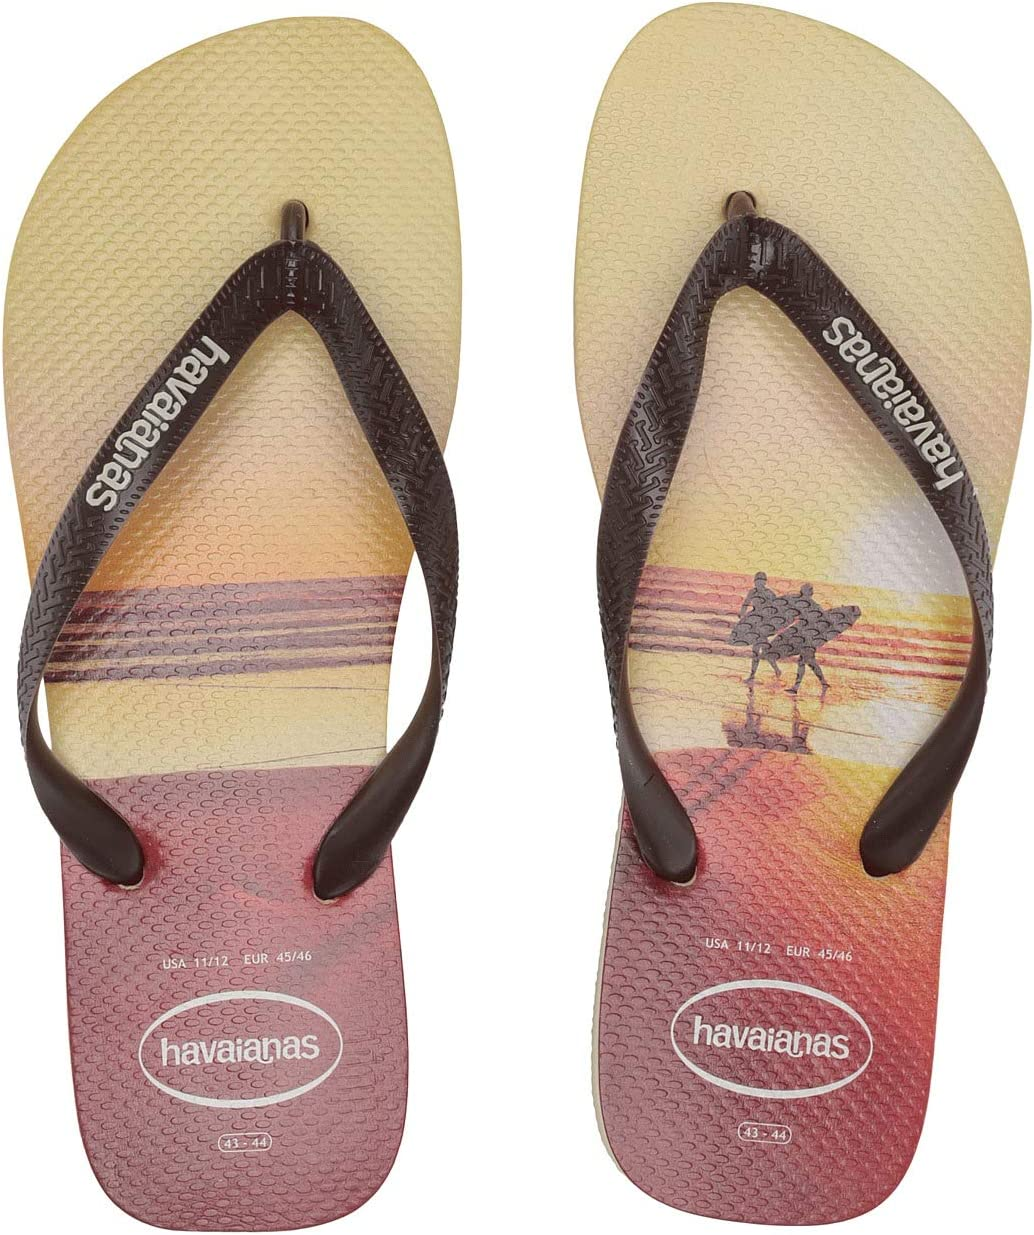 9cfc99cf4 Havaianas Shoes   Accessories